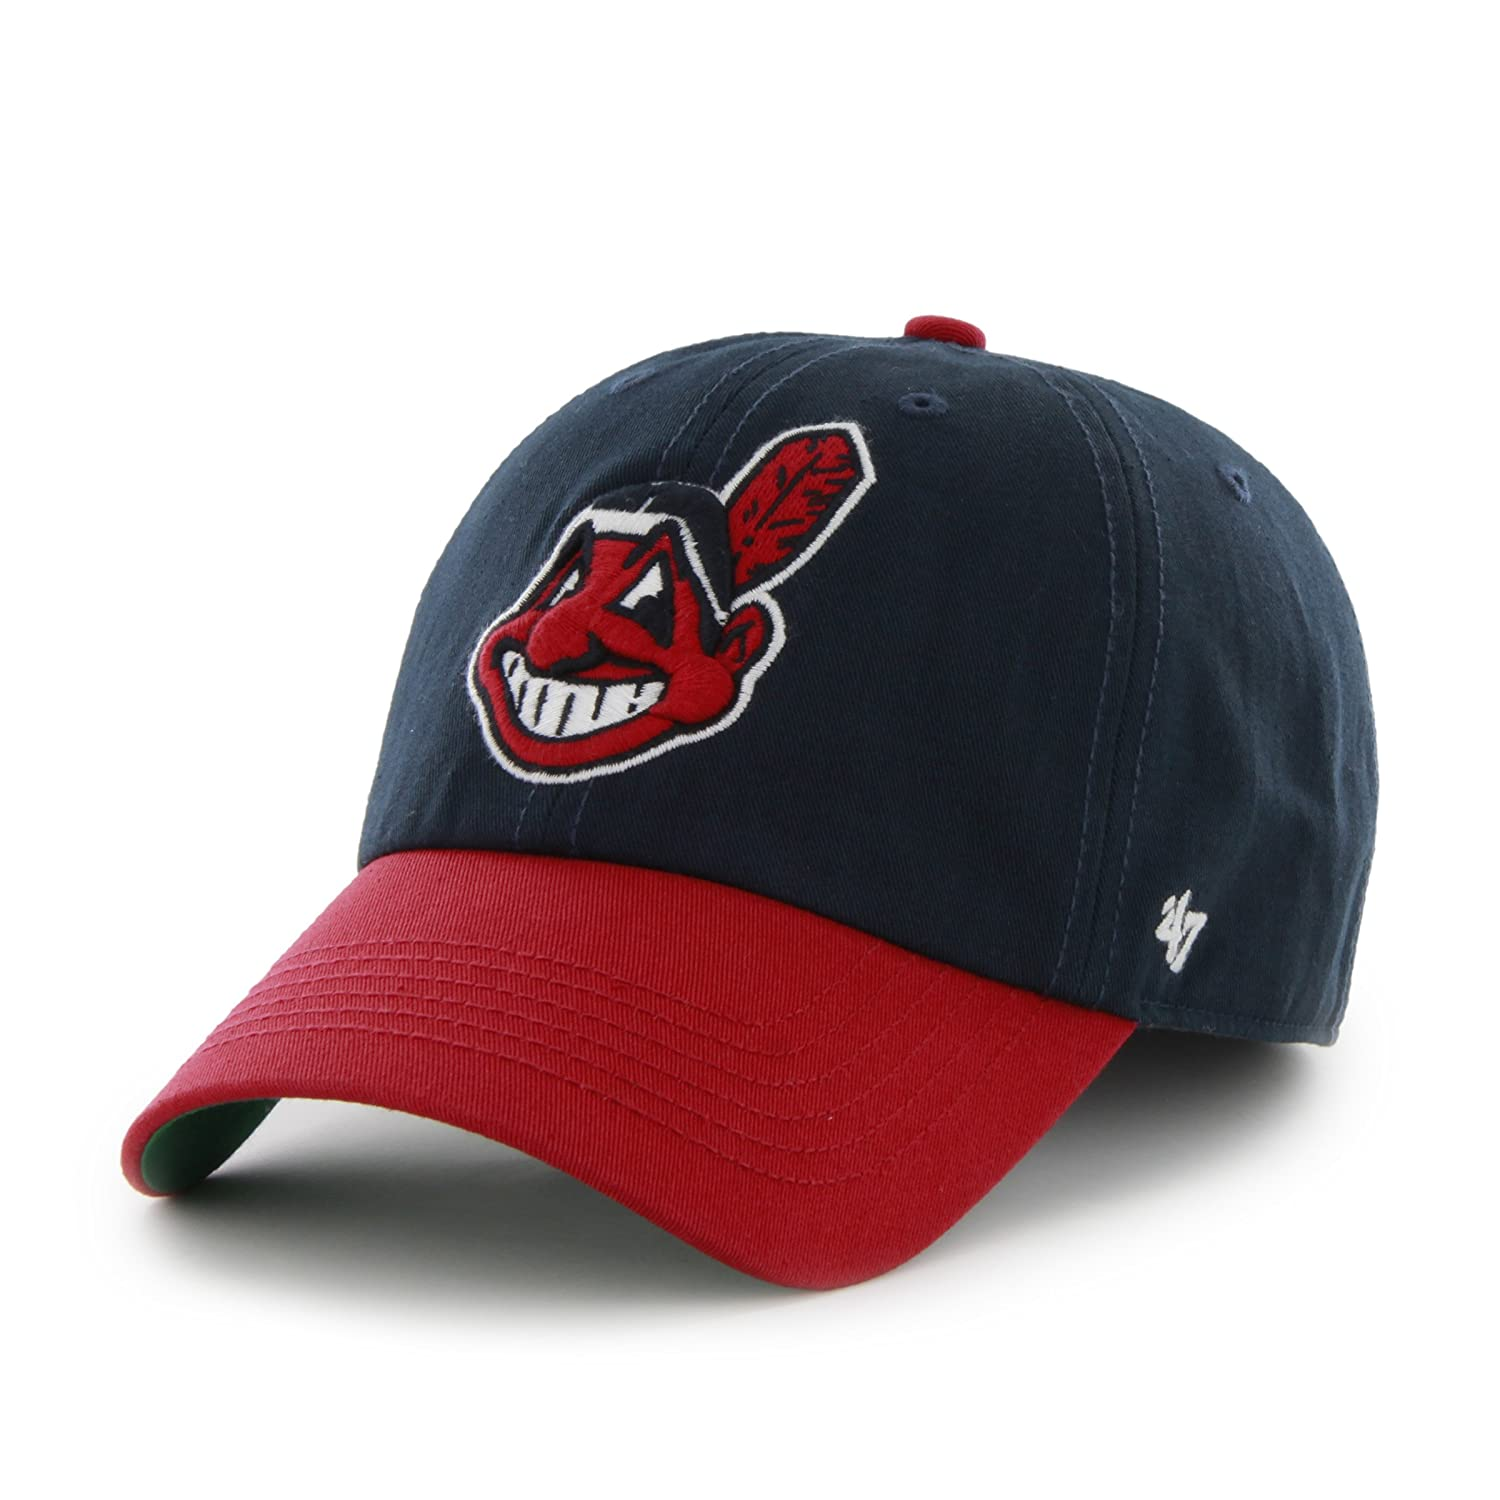 online store fb760 7b881 Amazon.com   MLB  47 Franchise Fitted Hat   Sports   Outdoors